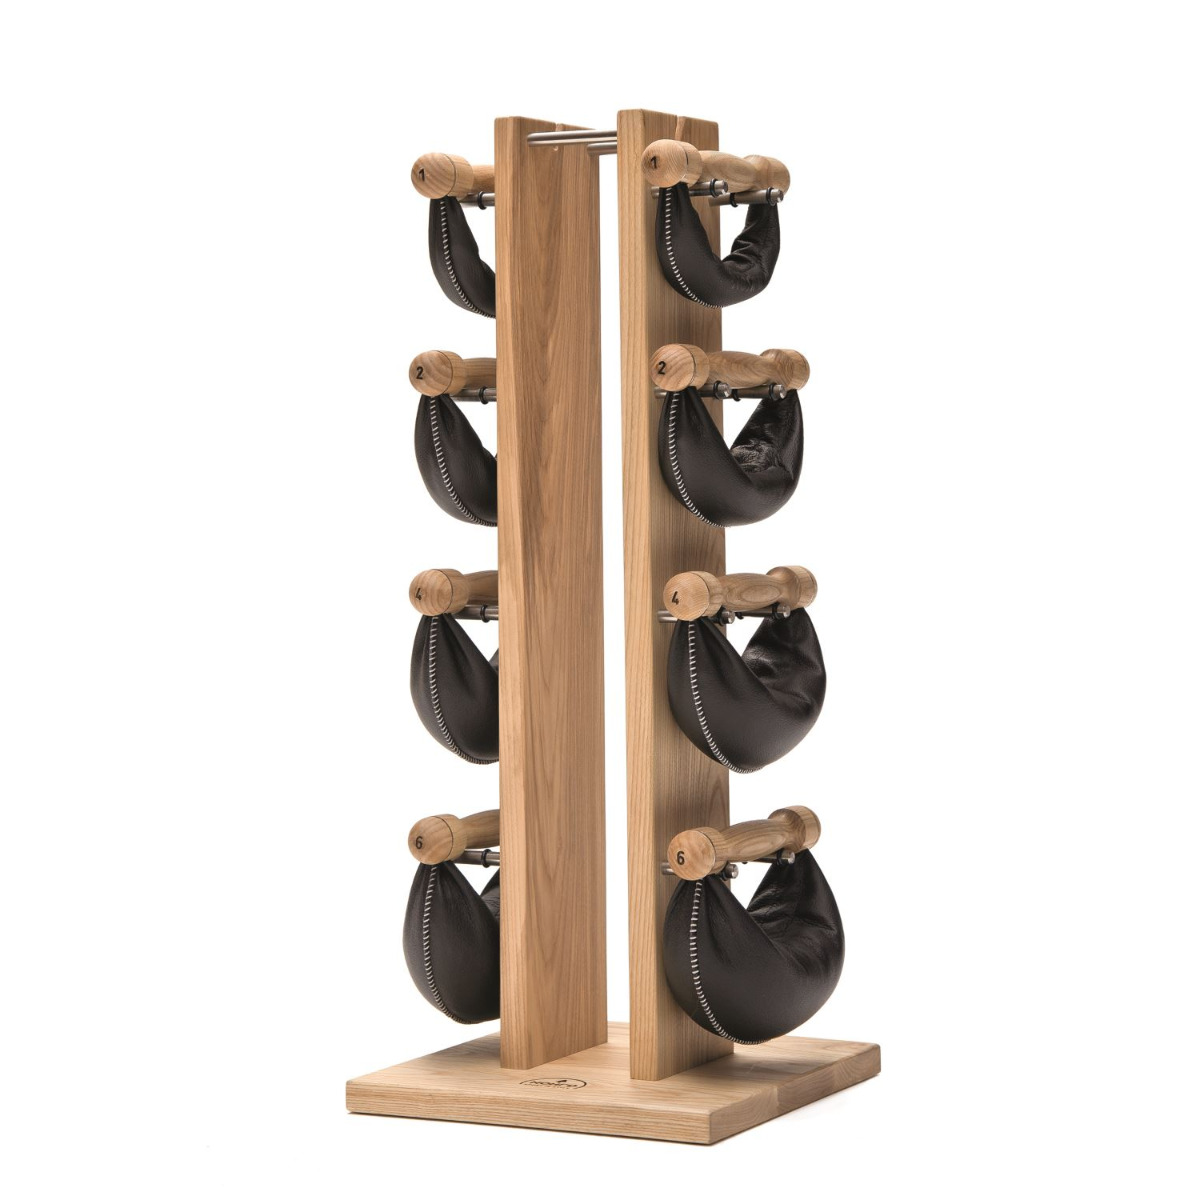 NOHrD Swing Tower Set Ash (Natural) with Swing Bells